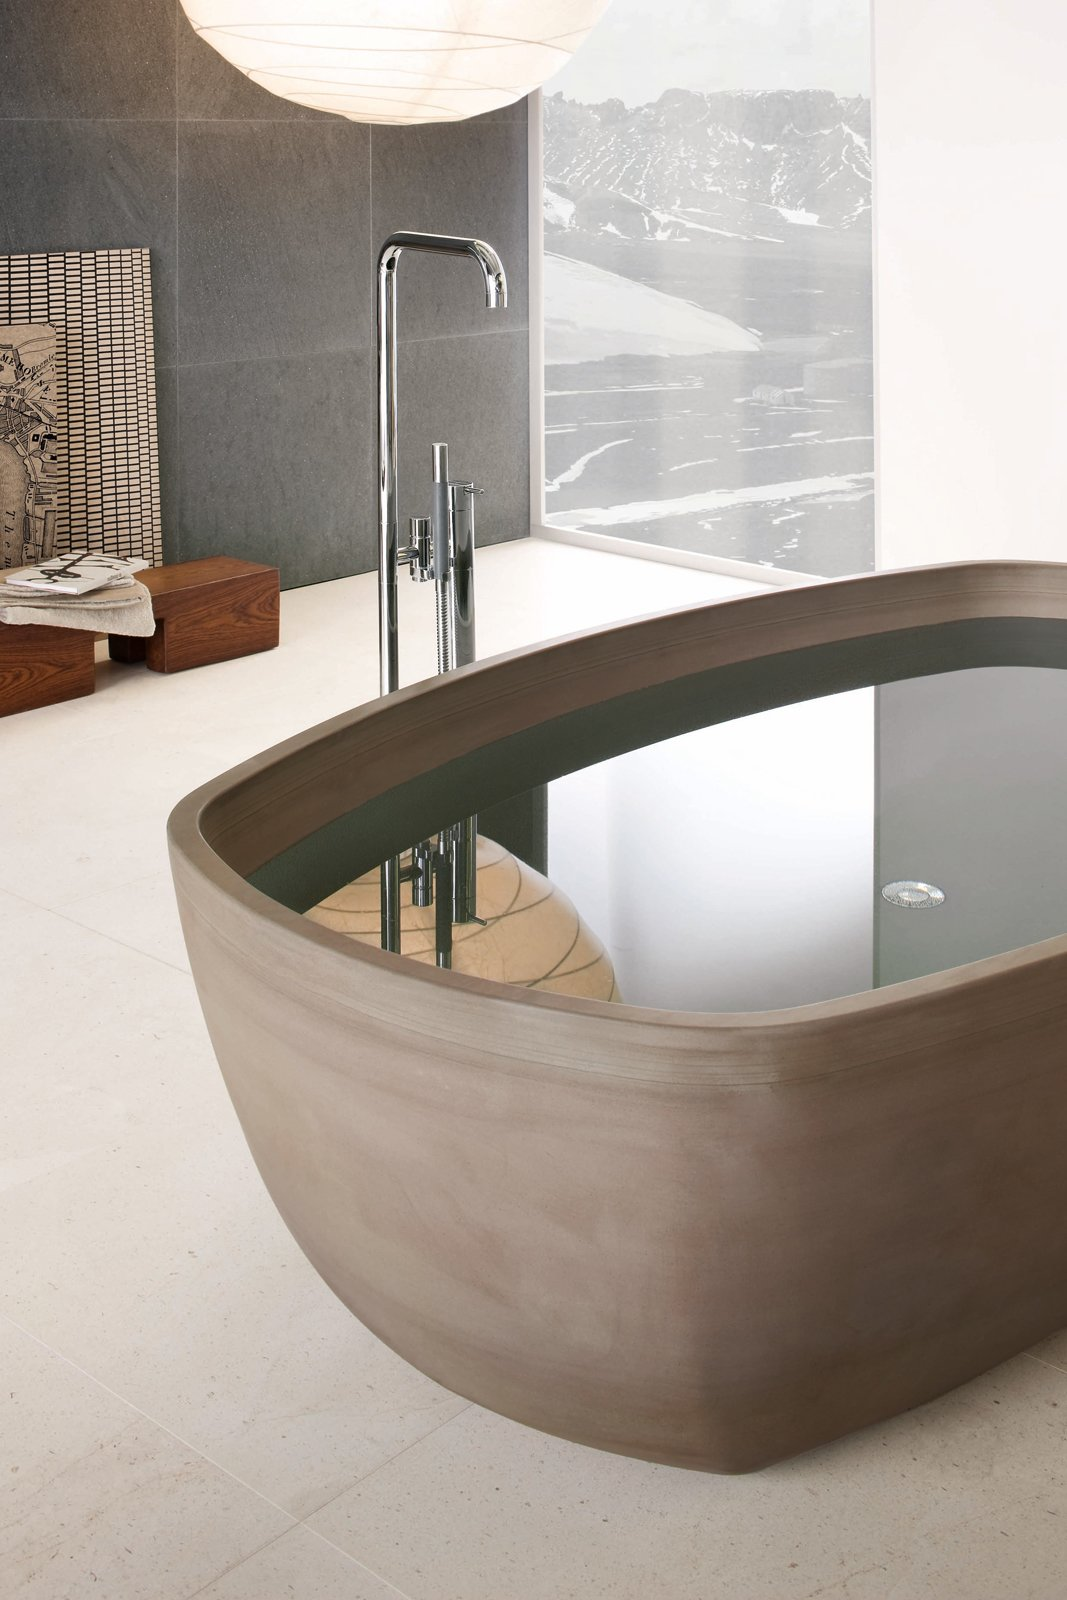 Inkstone bathtub, Sand Brown stone. Tagged: Bath Room and Freestanding Tub.  Best Photos from Inky Inspiration